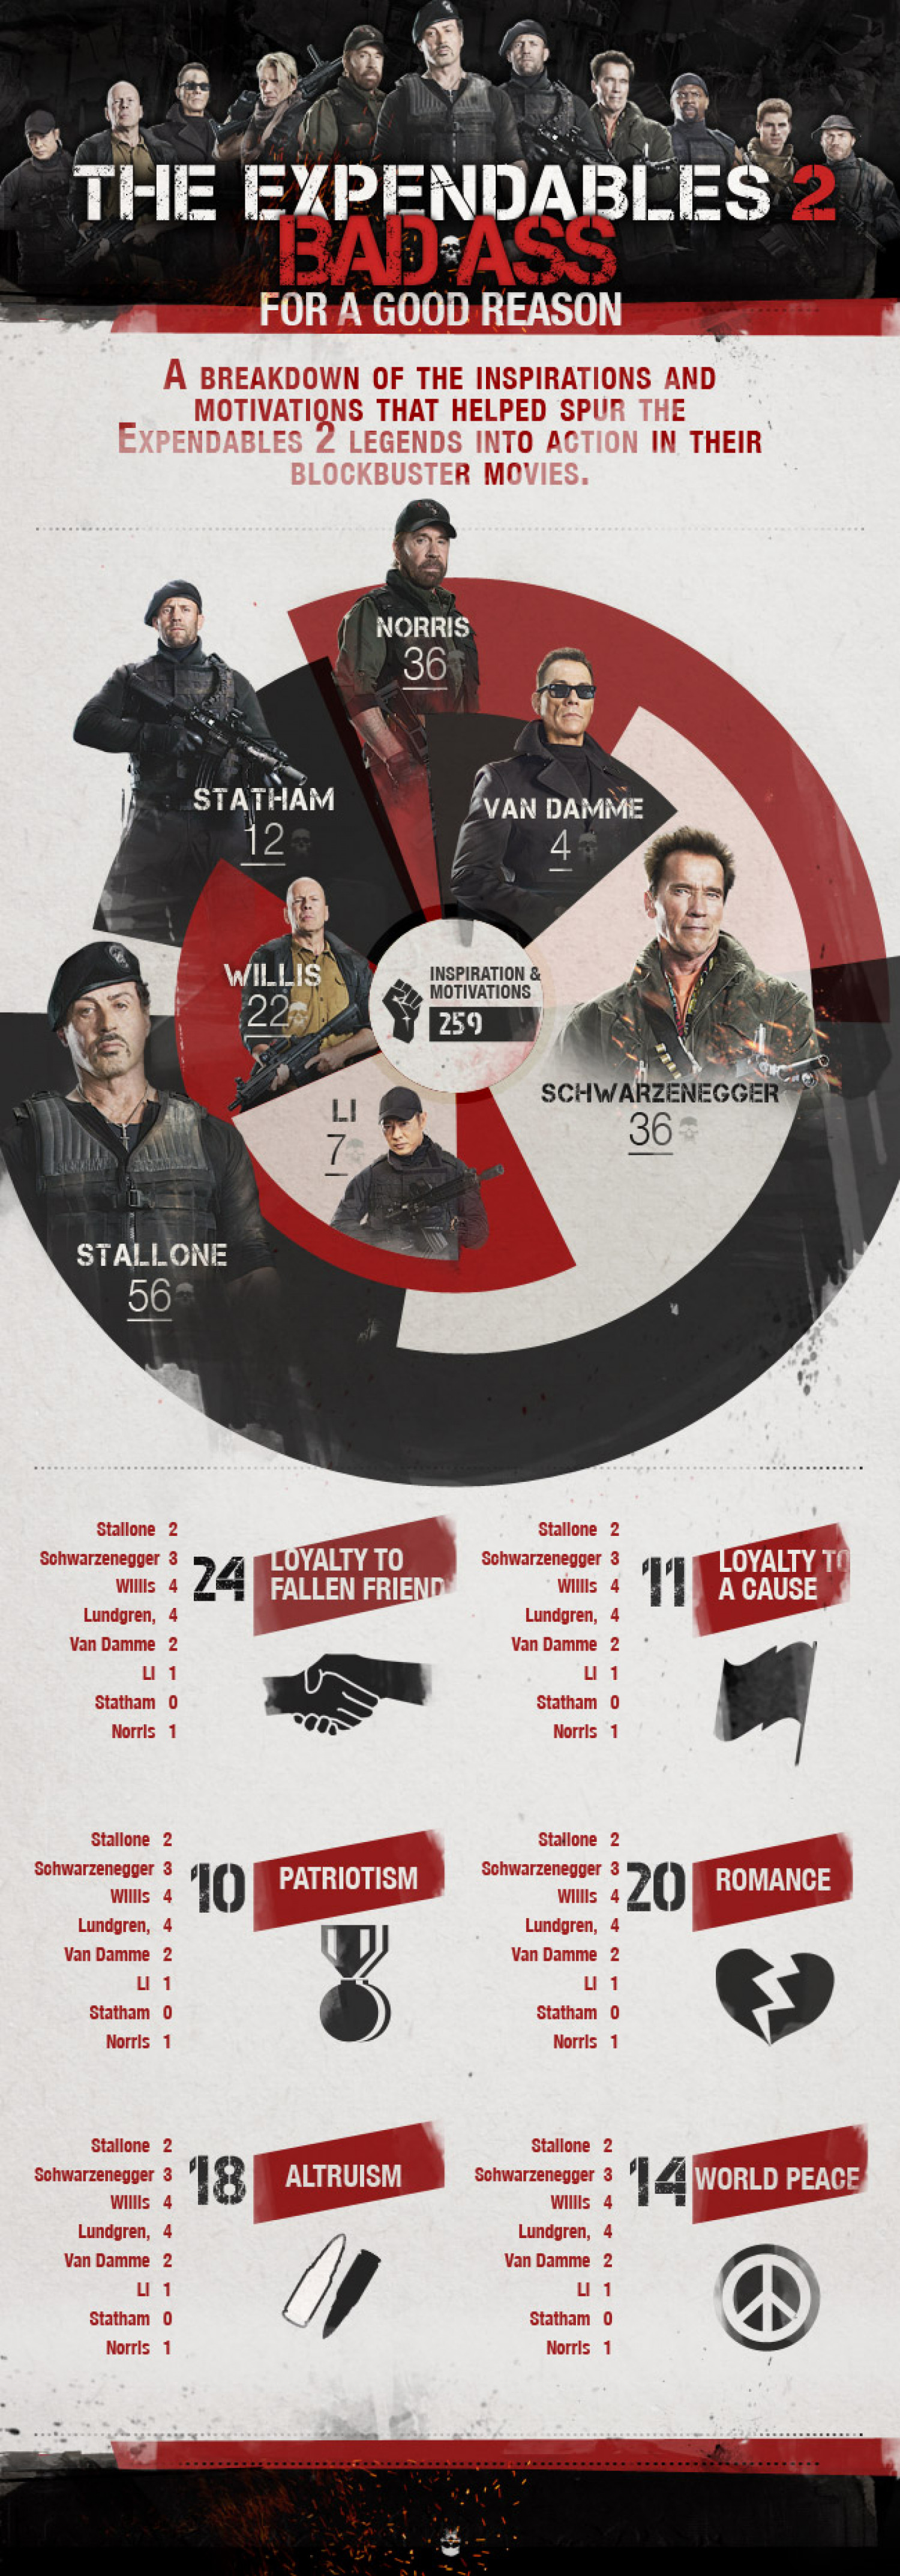 Expendables 2: Bad Ass For a Good Reason Infographic